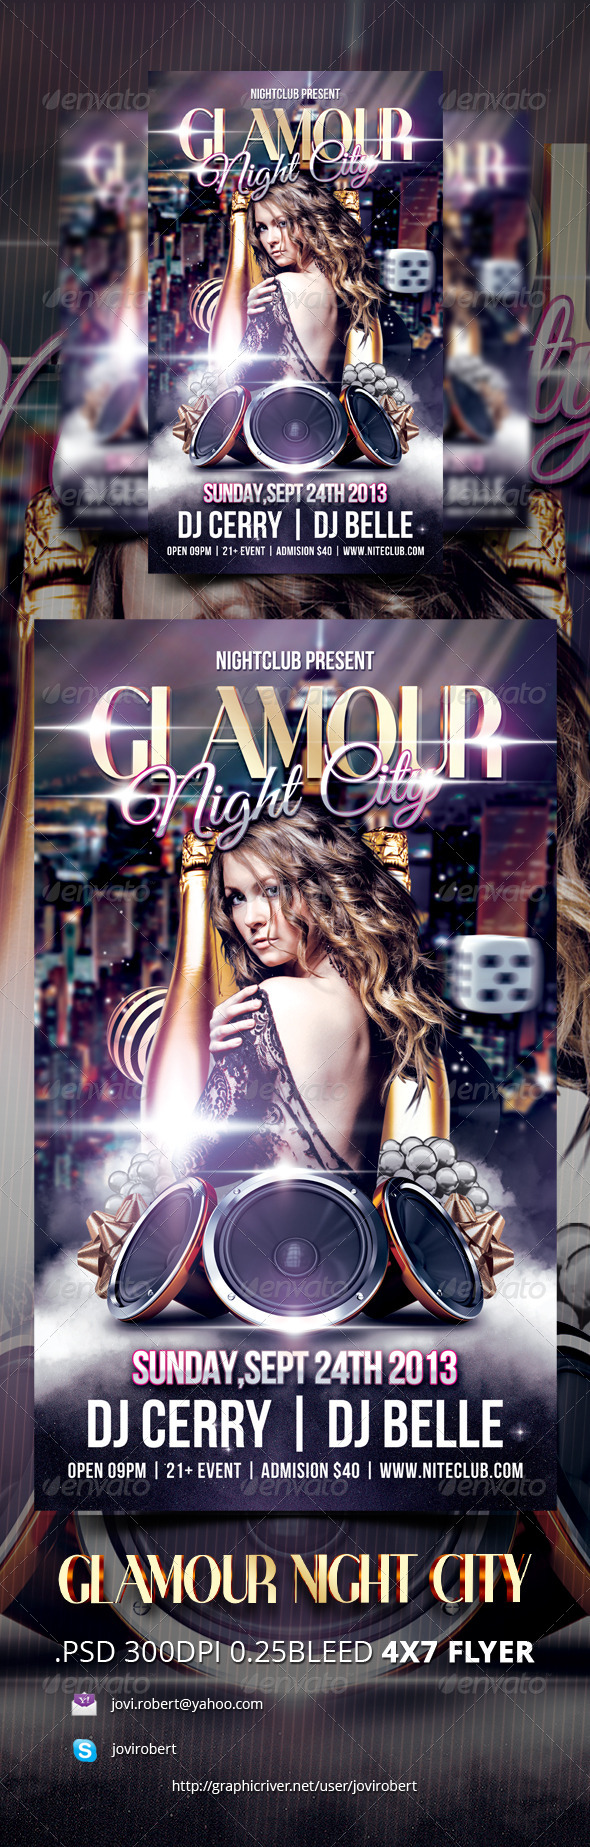 Glamour Night City Night city, City, Cmyk color